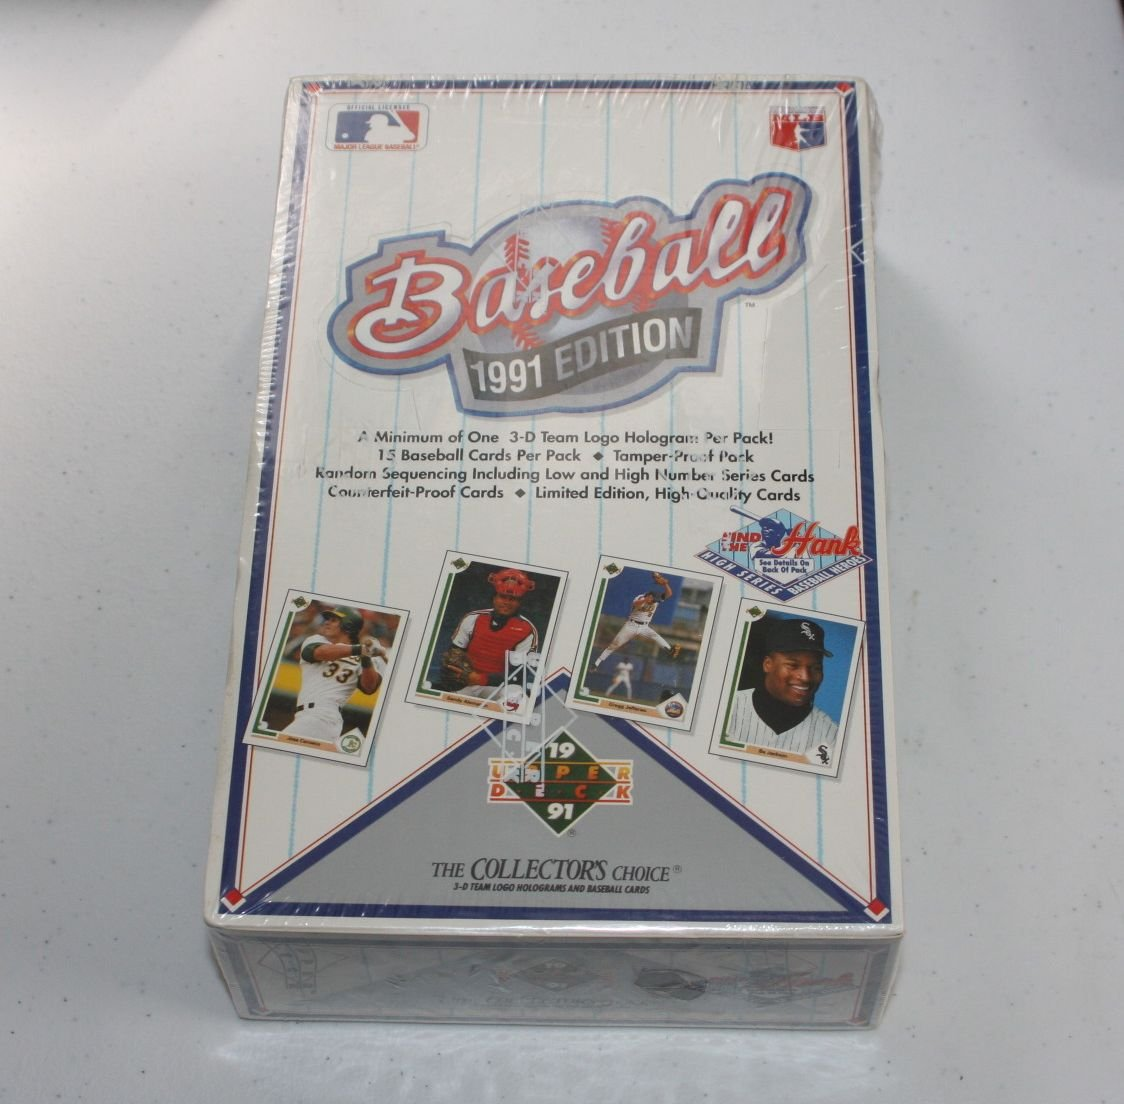 Upper Deck Collectors Choice 1991 Baseball High Series Sealed Box